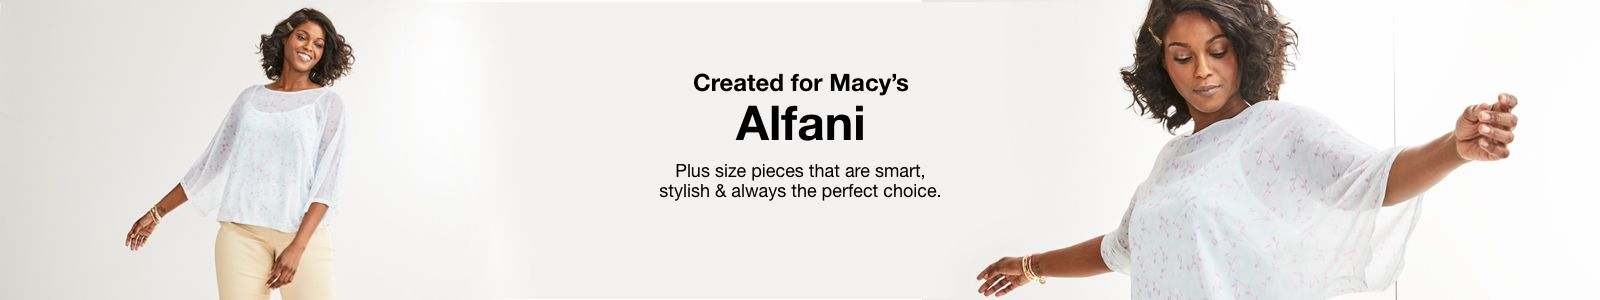 Created for Macy's, Alfani, Plus size pieces that are smart, stylish and always the perfect choice.